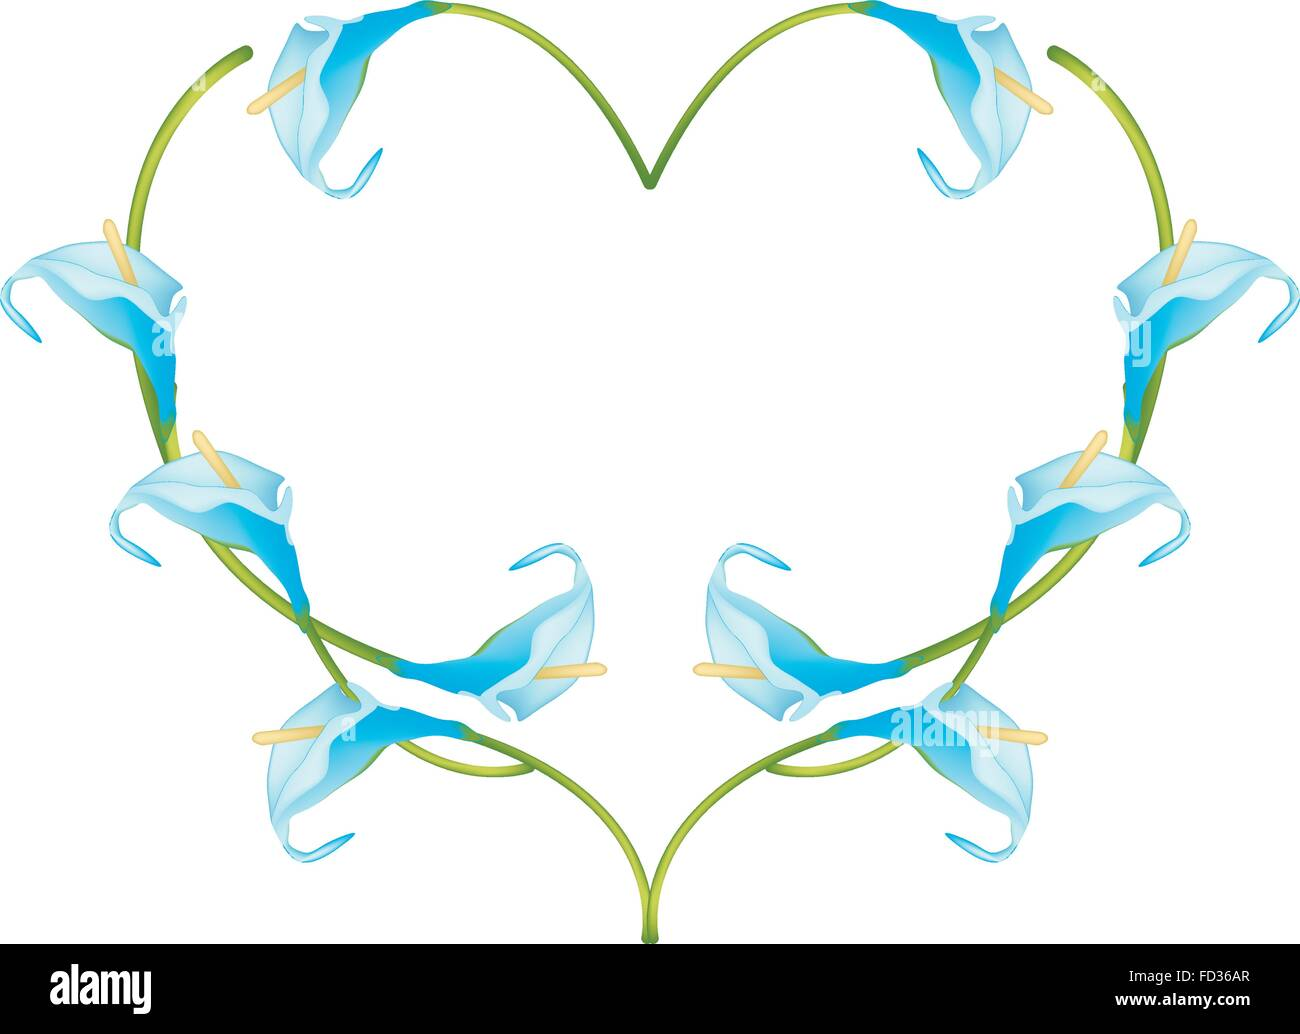 Love Concept, Illustration of Light Blue Anthurium Flowers or Flamingo Flowers Forming in Heart Shape Isolated on - Stock Vector